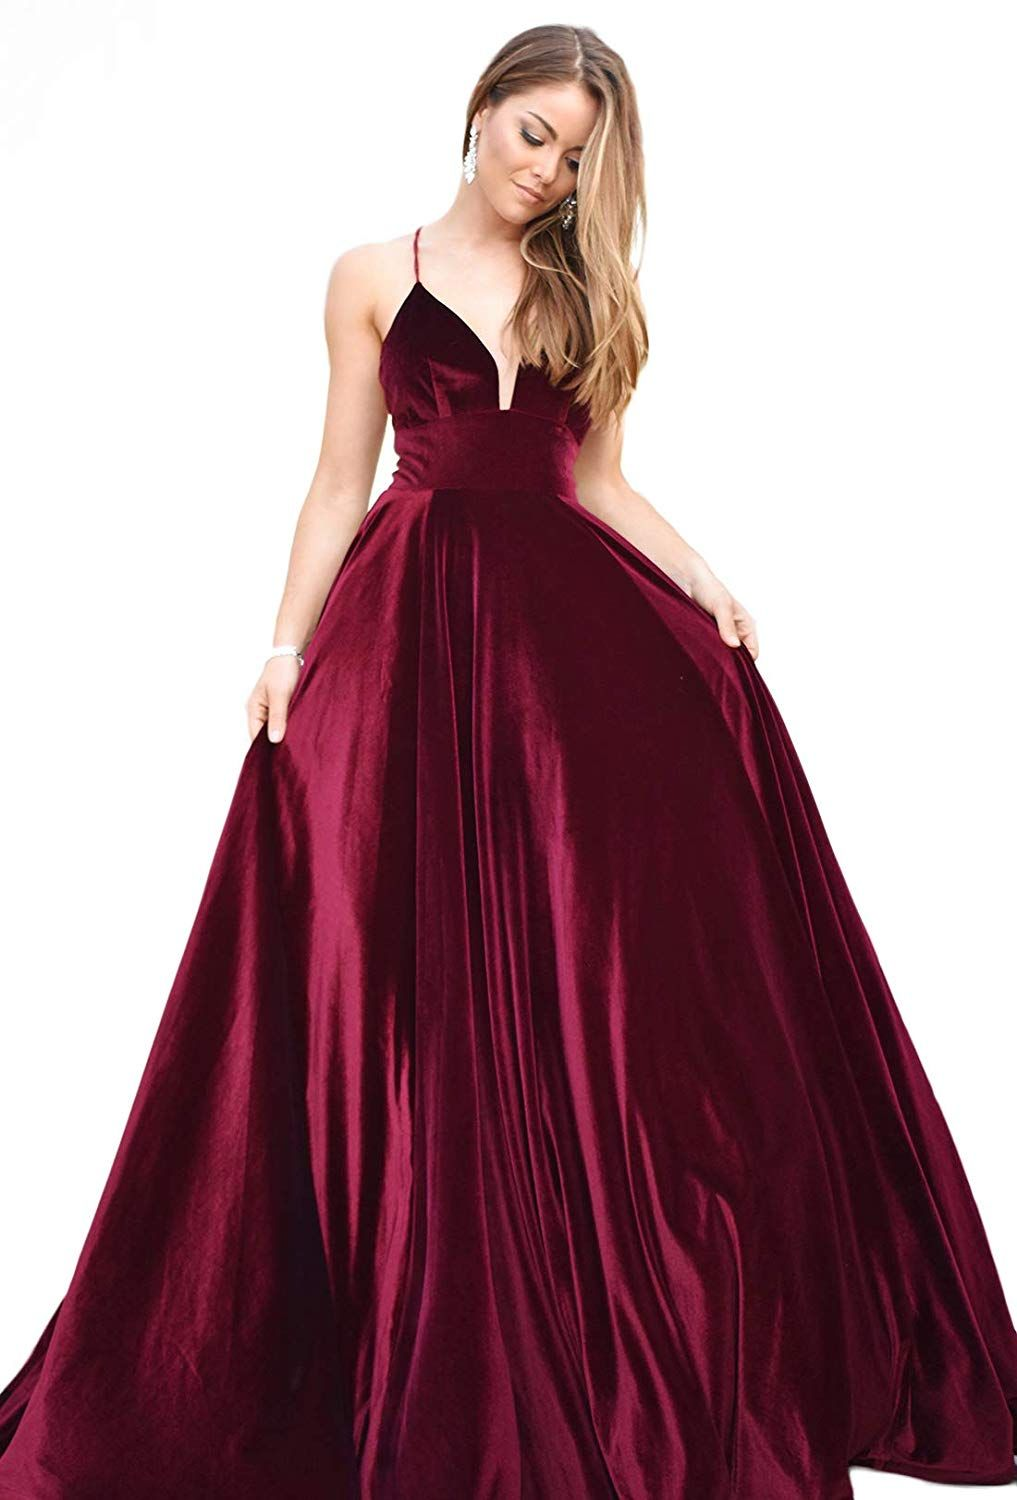 Fabric Velvet Soft And Stretchy Perfect Formal Prom Ball Gown Embellishment V Neck A Line Style With Straps Op Velvet Prom Dress Ball Dresses Prom Dresses [ 1500 x 1017 Pixel ]